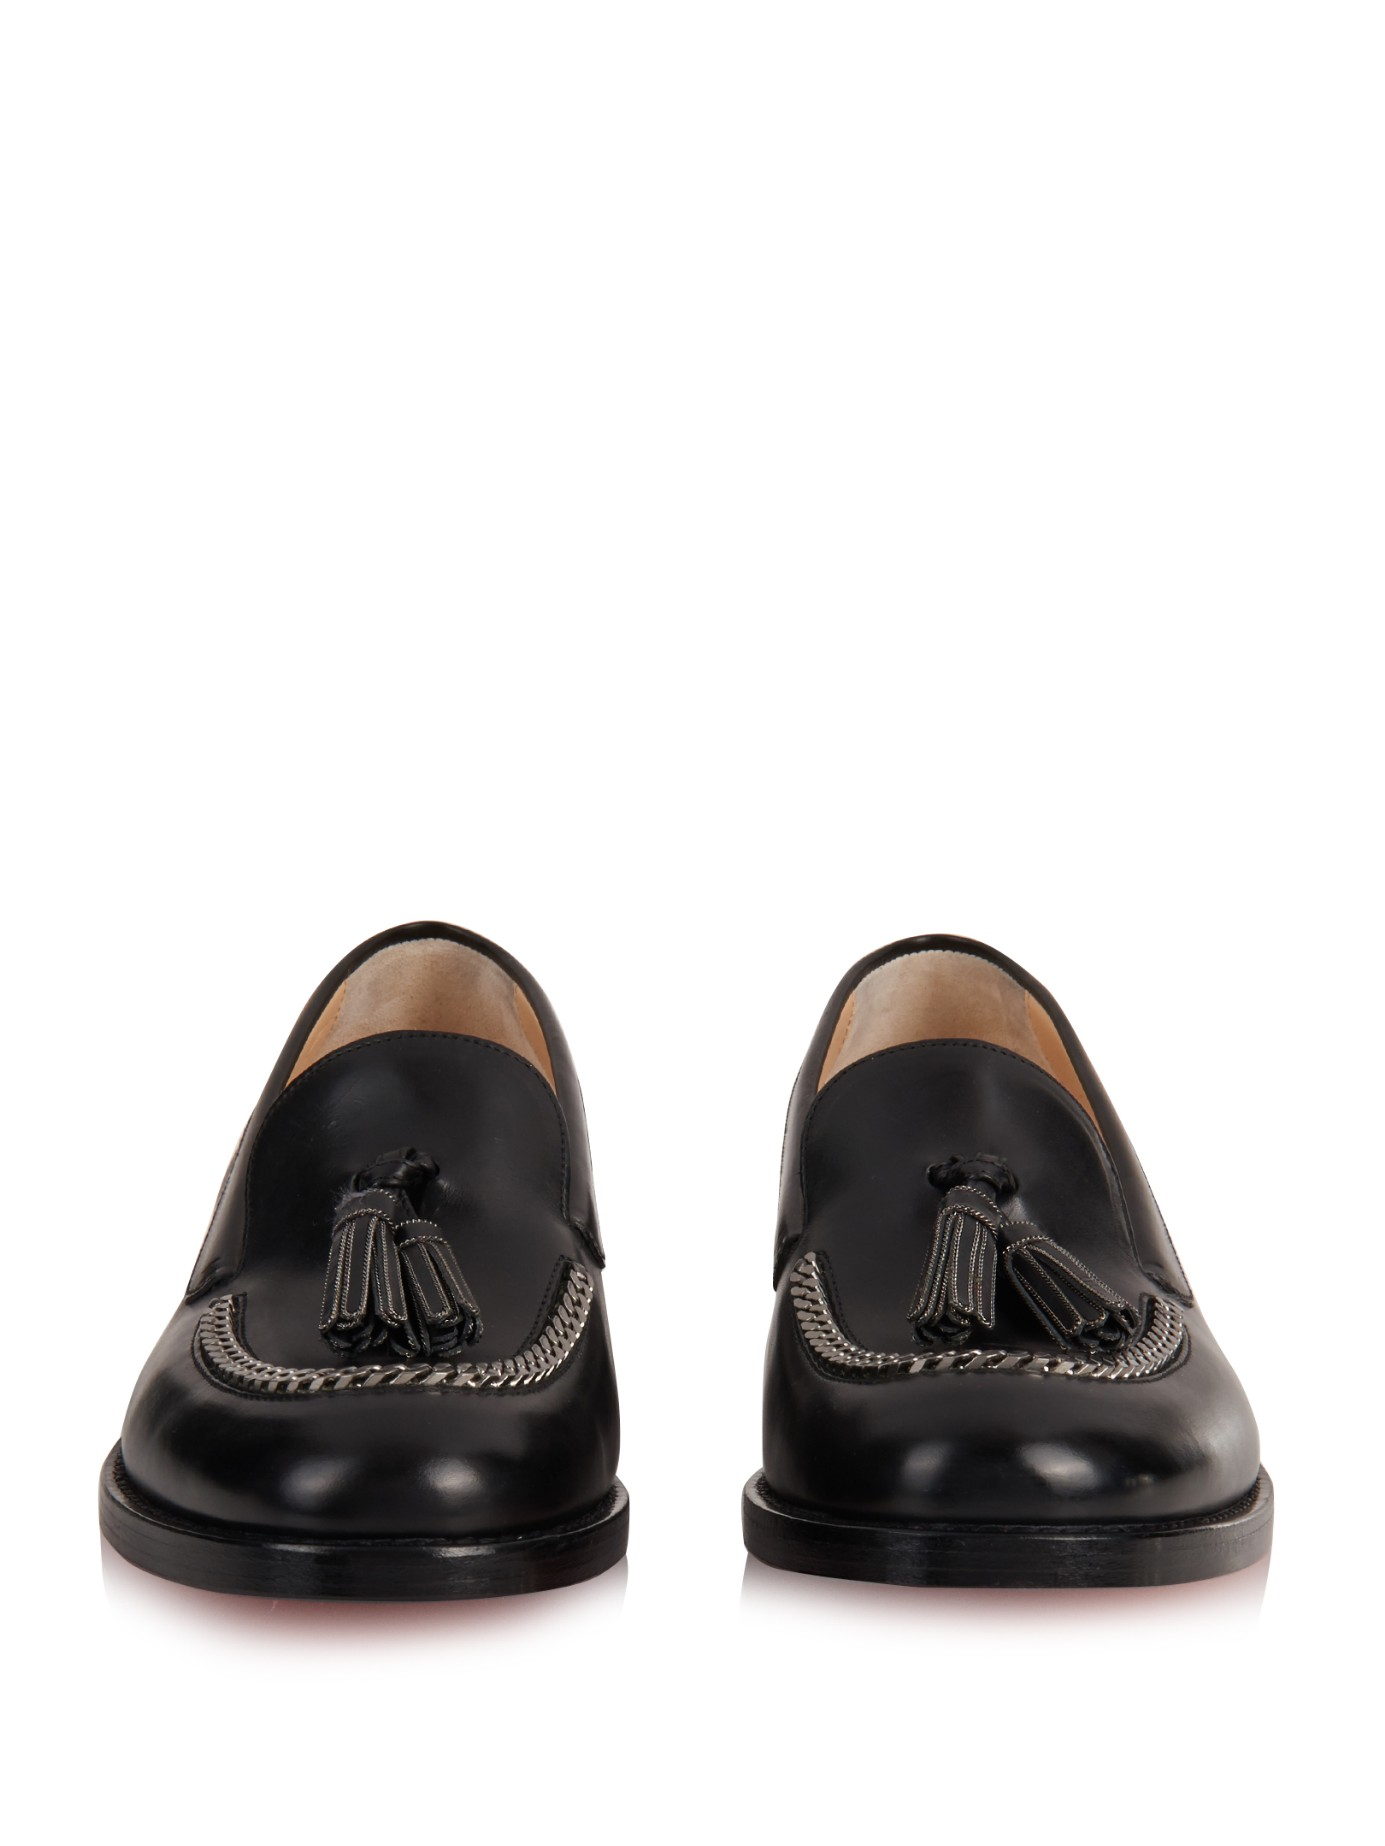 shoes replica usa - christian louboutin loafers Black leather leather tassels | The ...